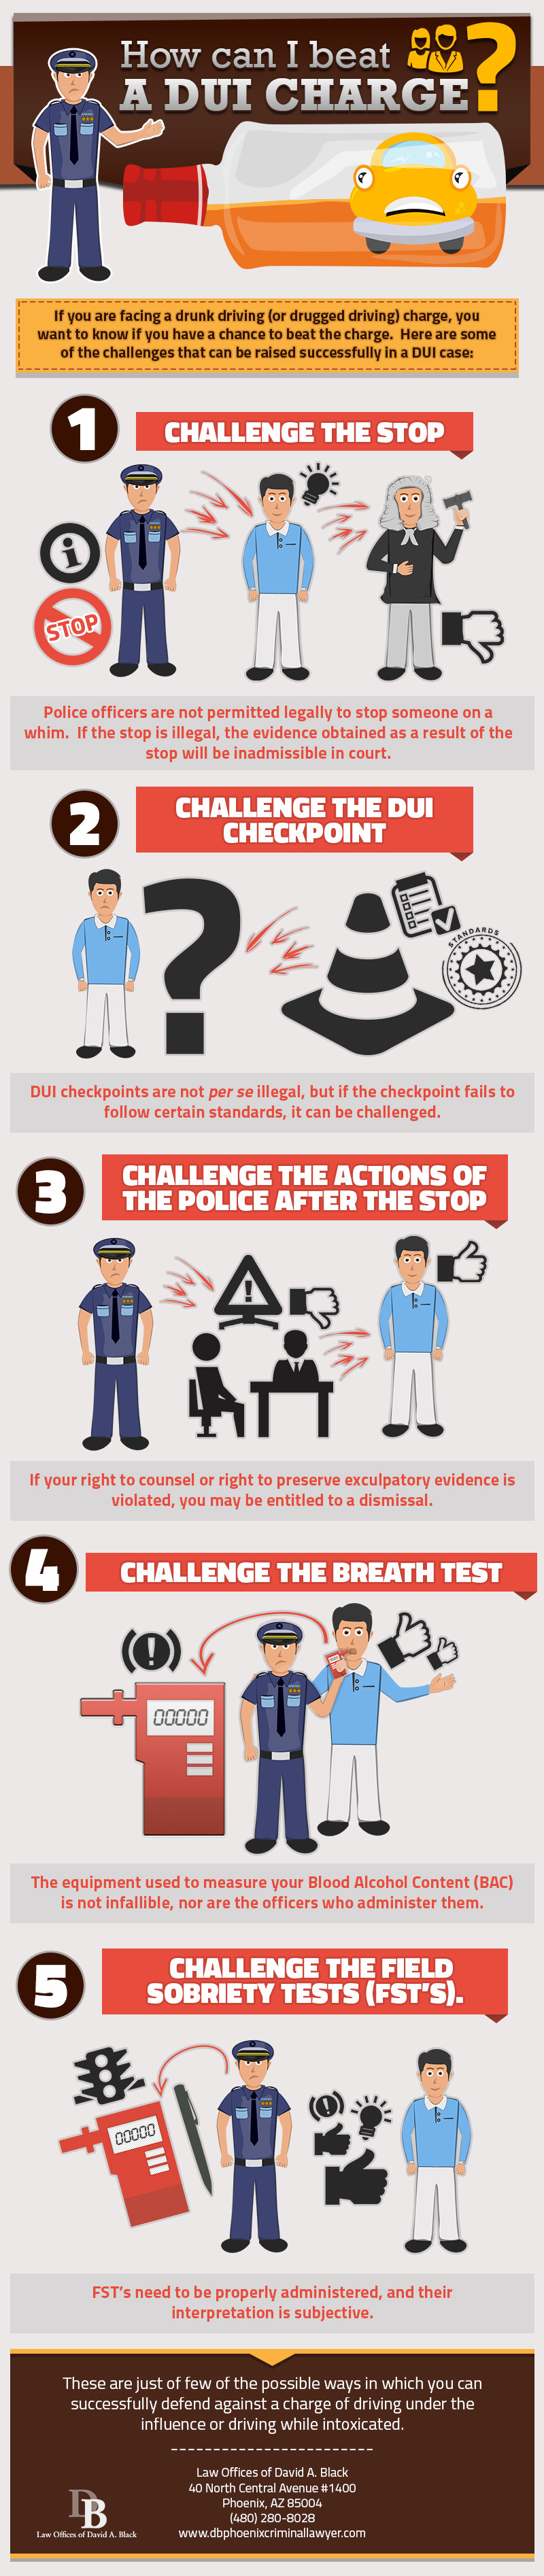 How can I beat a DUI charge (Infographic)